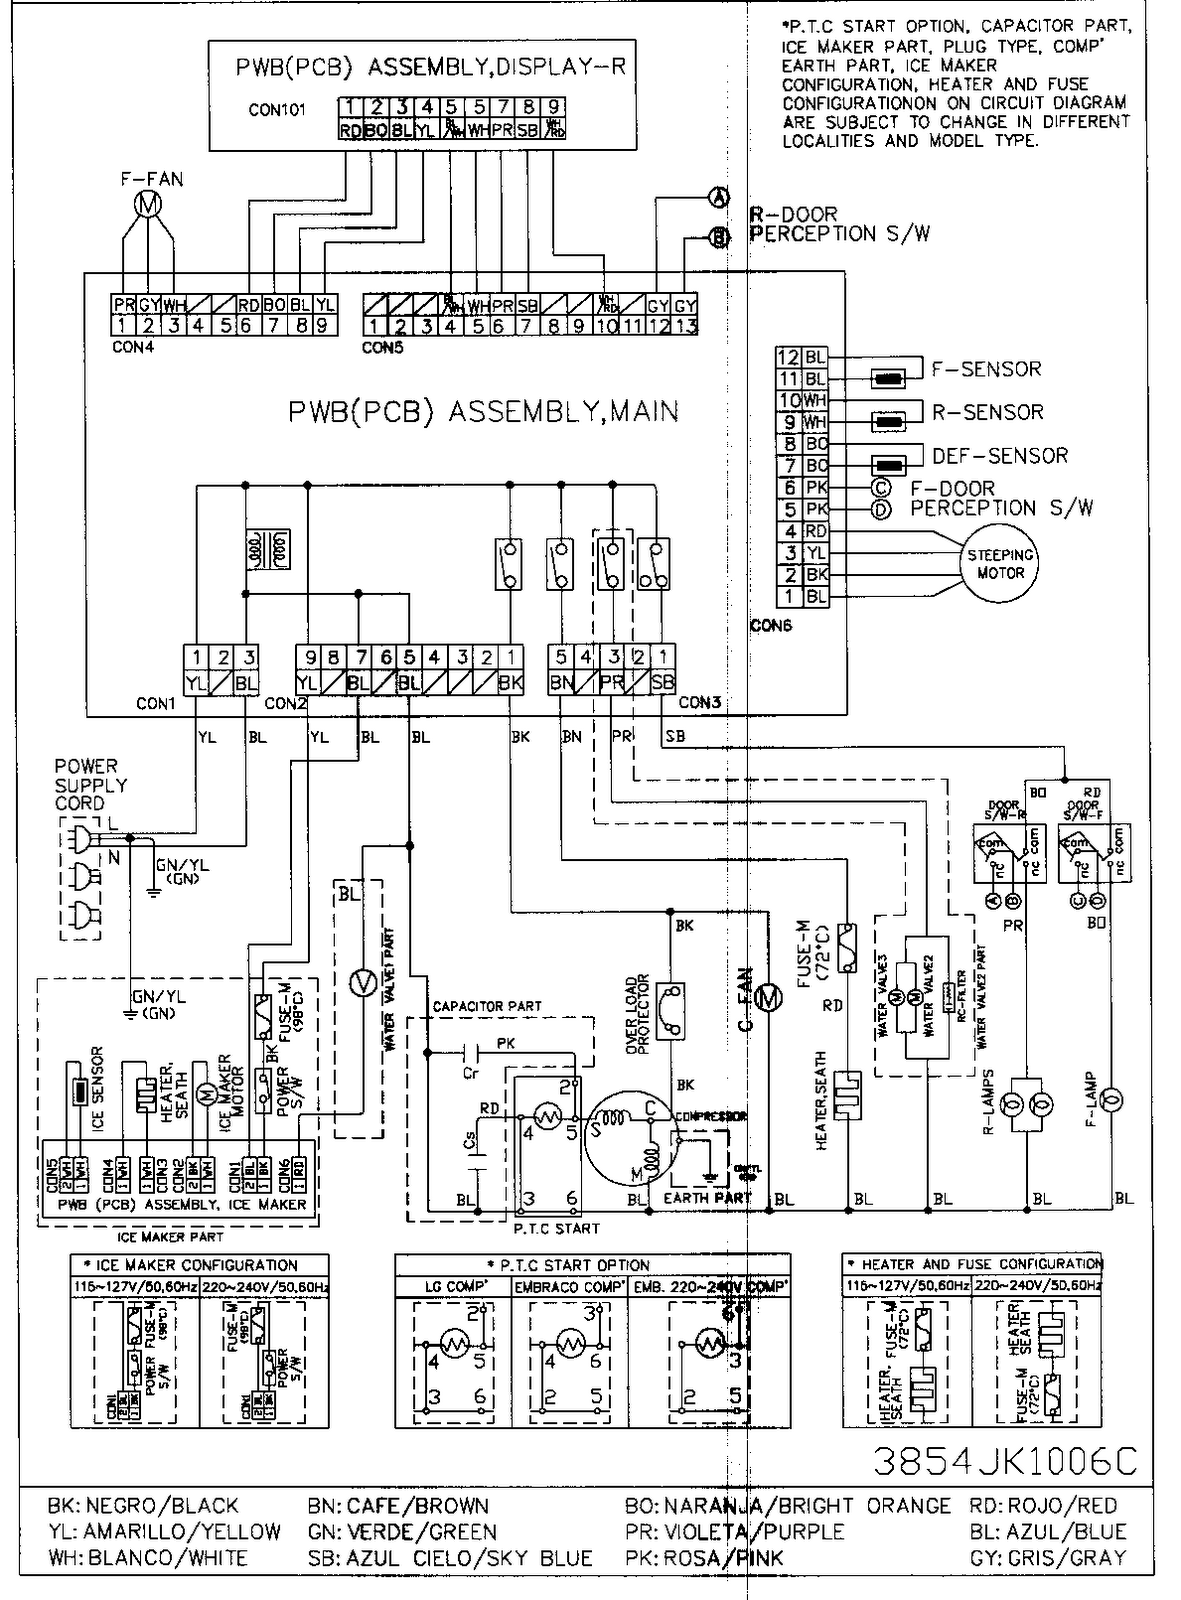 technology of 2 day: 2012-02-05 refrigerator schematic diagram whirlpool refrigerator schematic